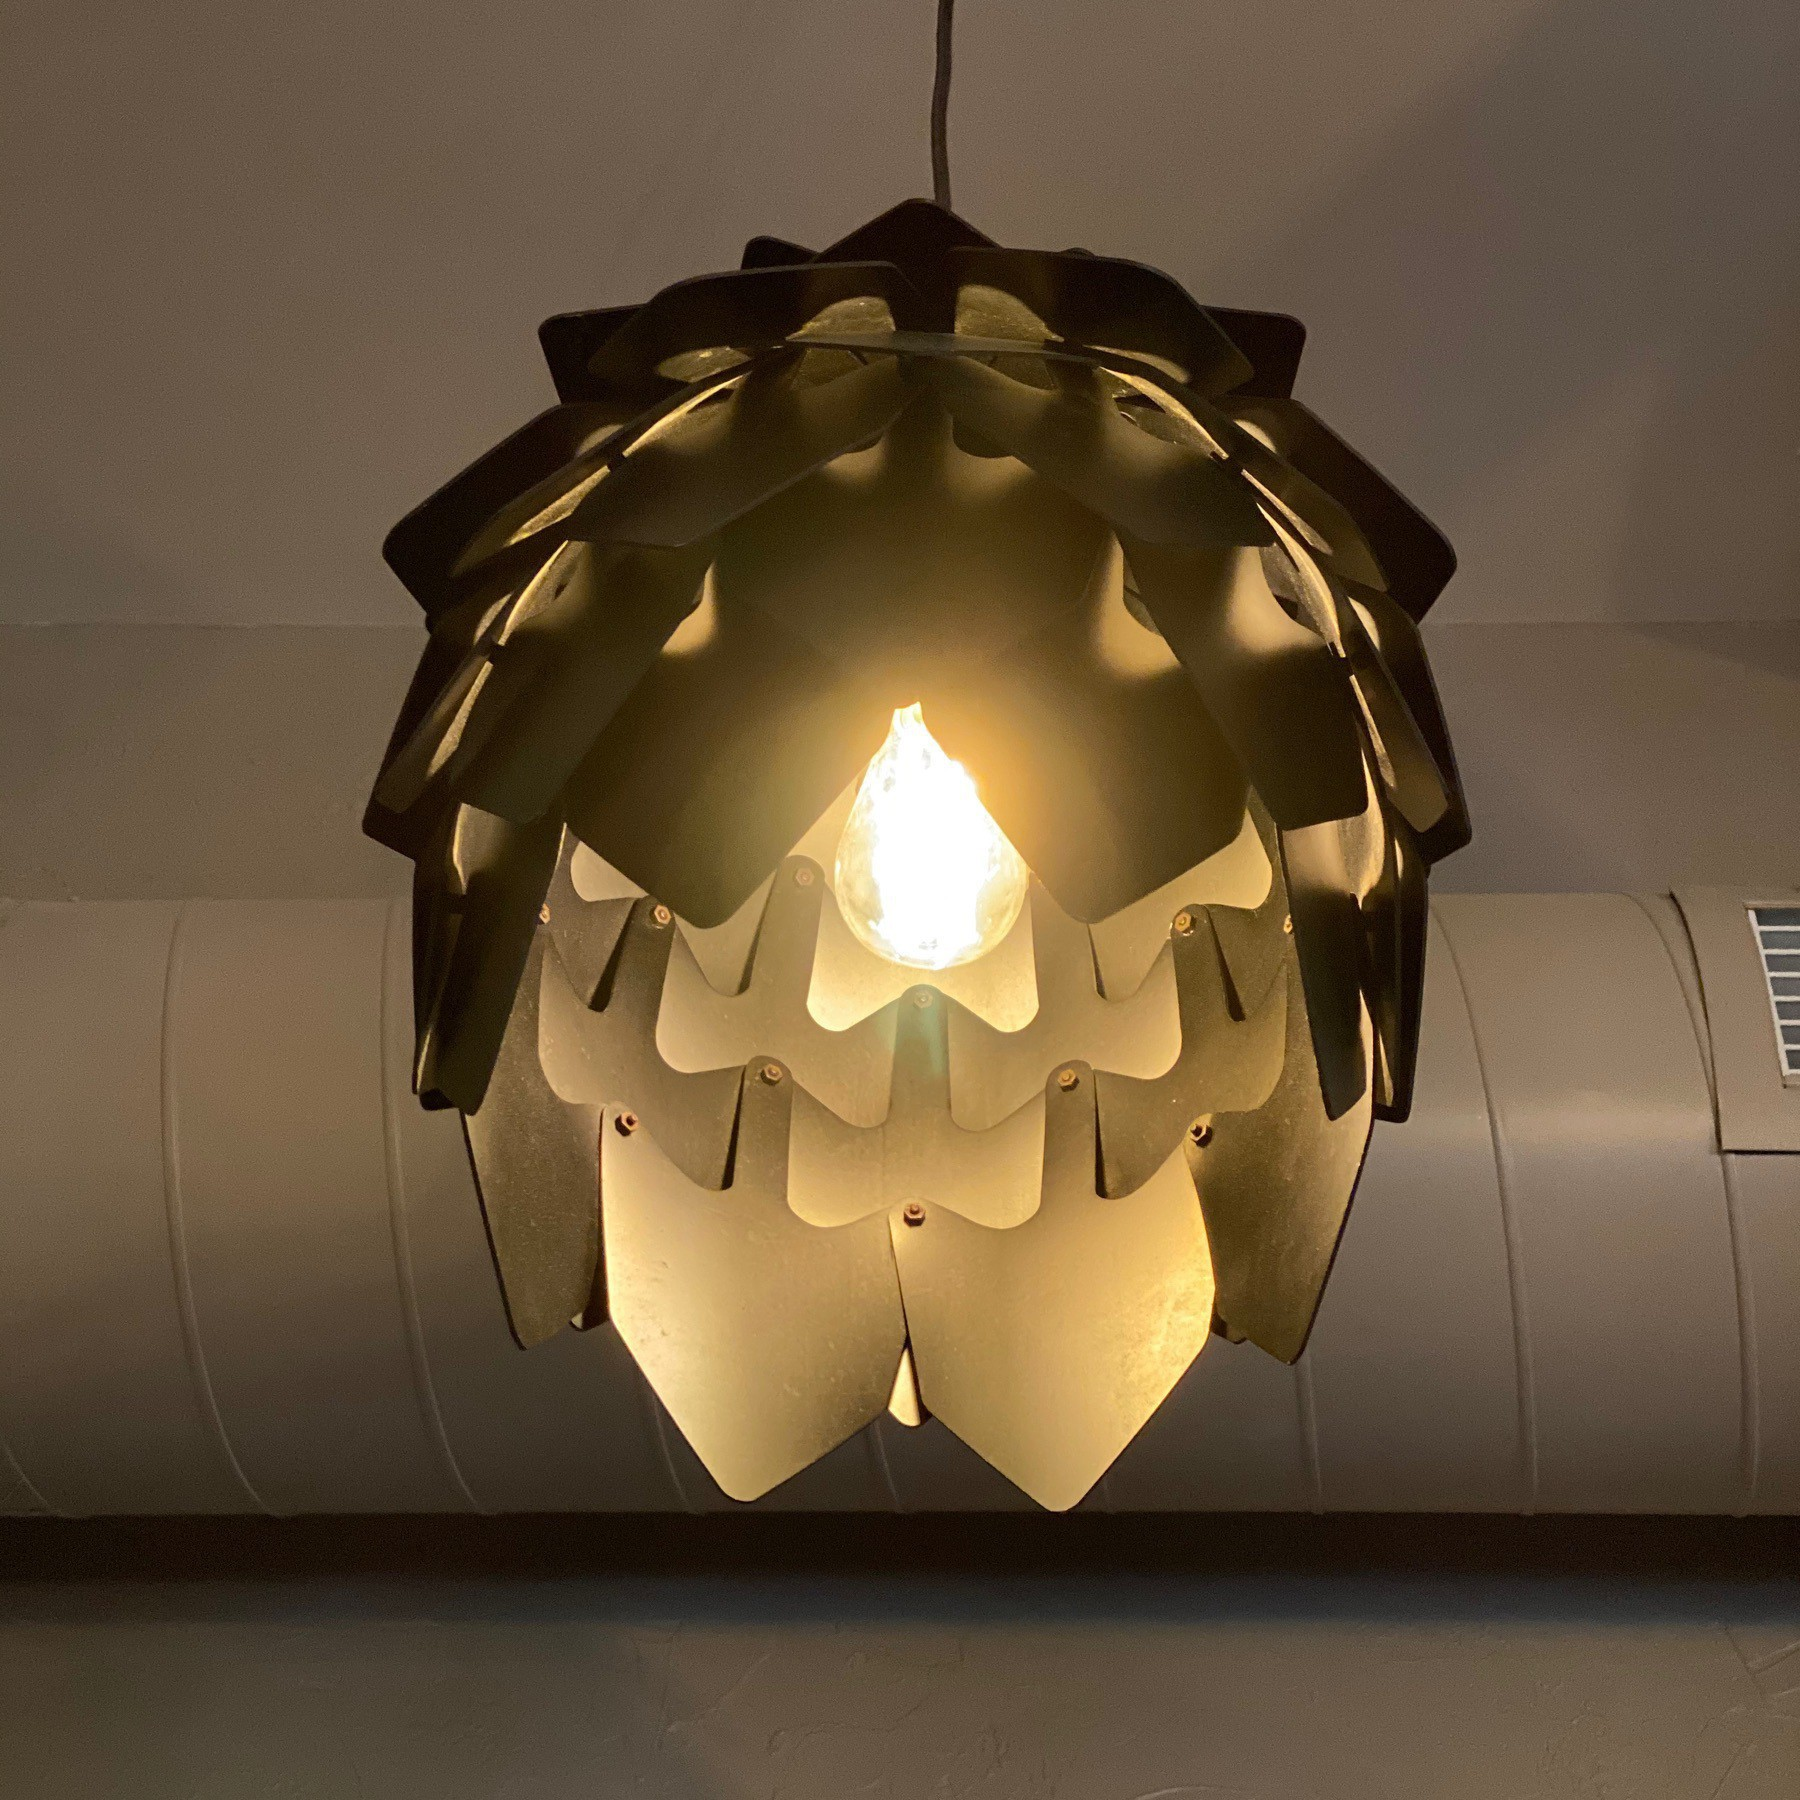 Lampshade in the shape of a hop.